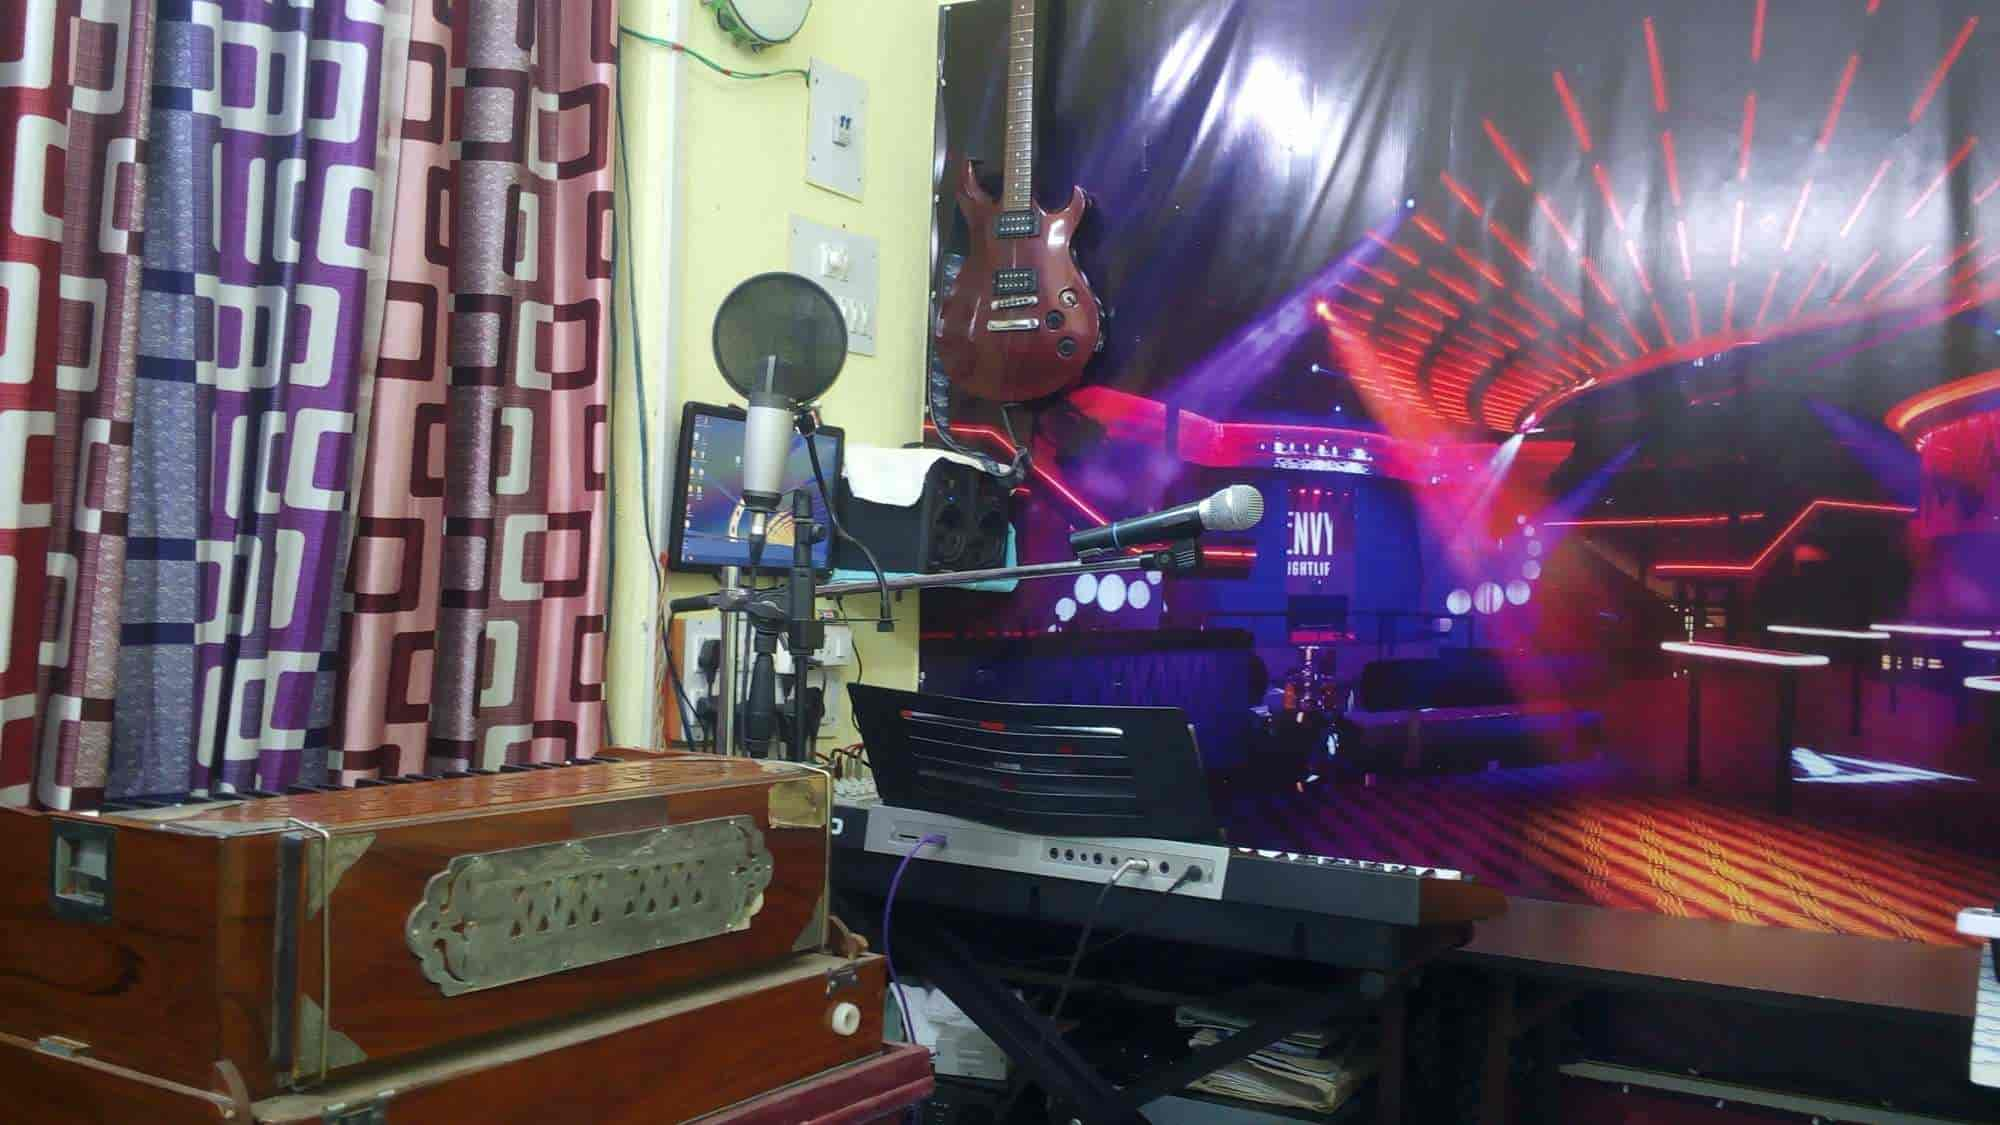 Smart Music, Kankarbagh - Music Classes in Patna - Justdial